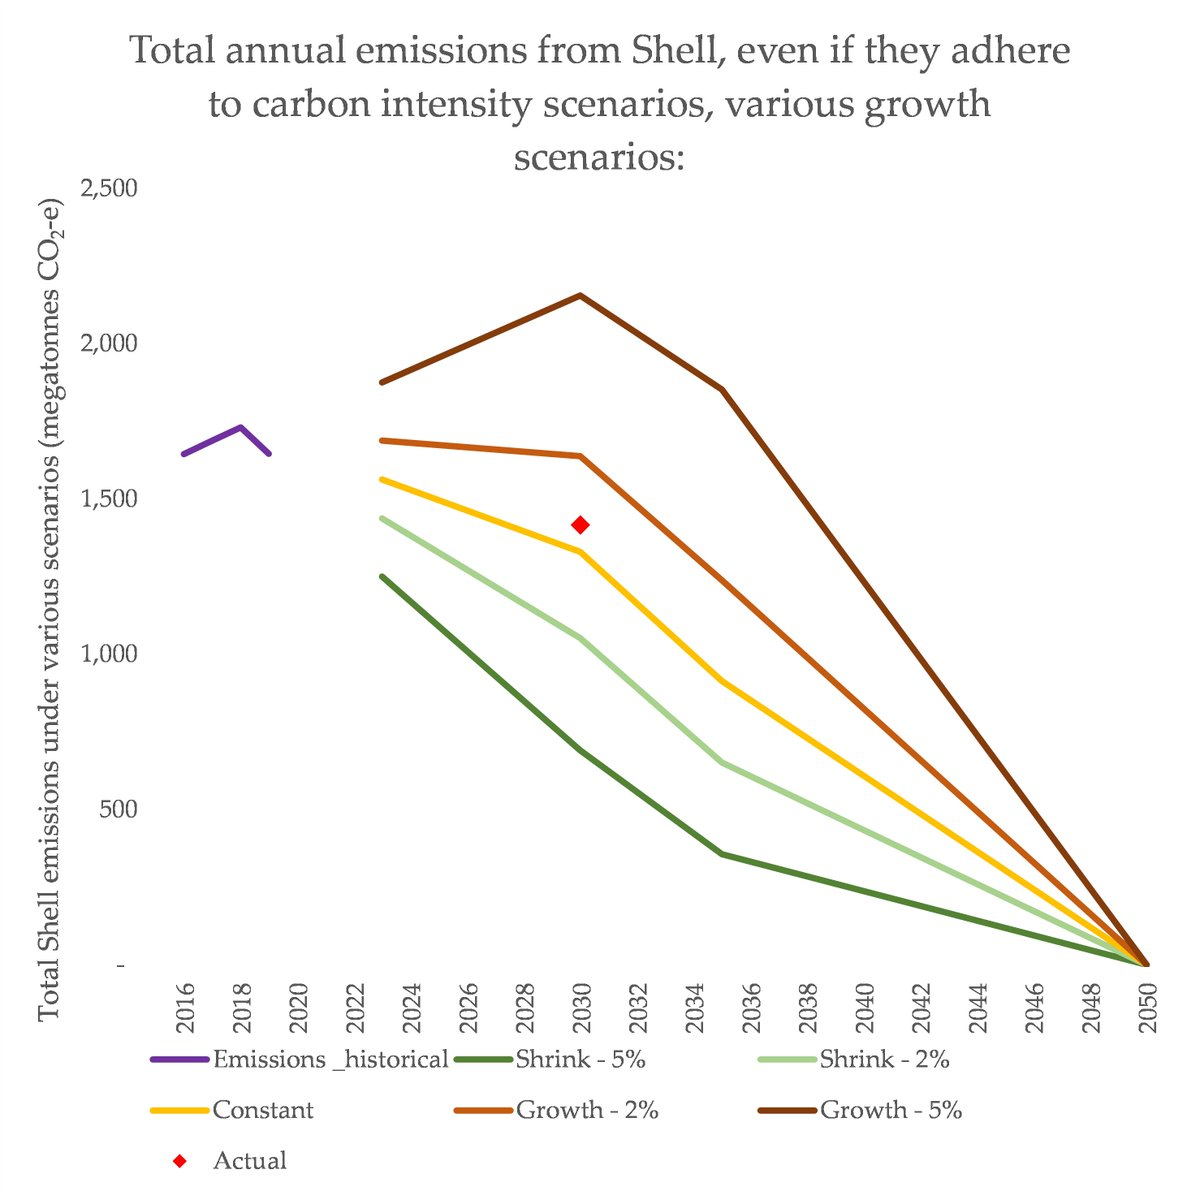 *this* is why Shell aren't talking about absolute emissions , or winding down their fossils ASAP. Their carbon intensity targets will be achieved by *adding* other stuff, not *reducing* fossil fuelsThat is - they could reduce emissions by winding down FFs - but *choose* not to.